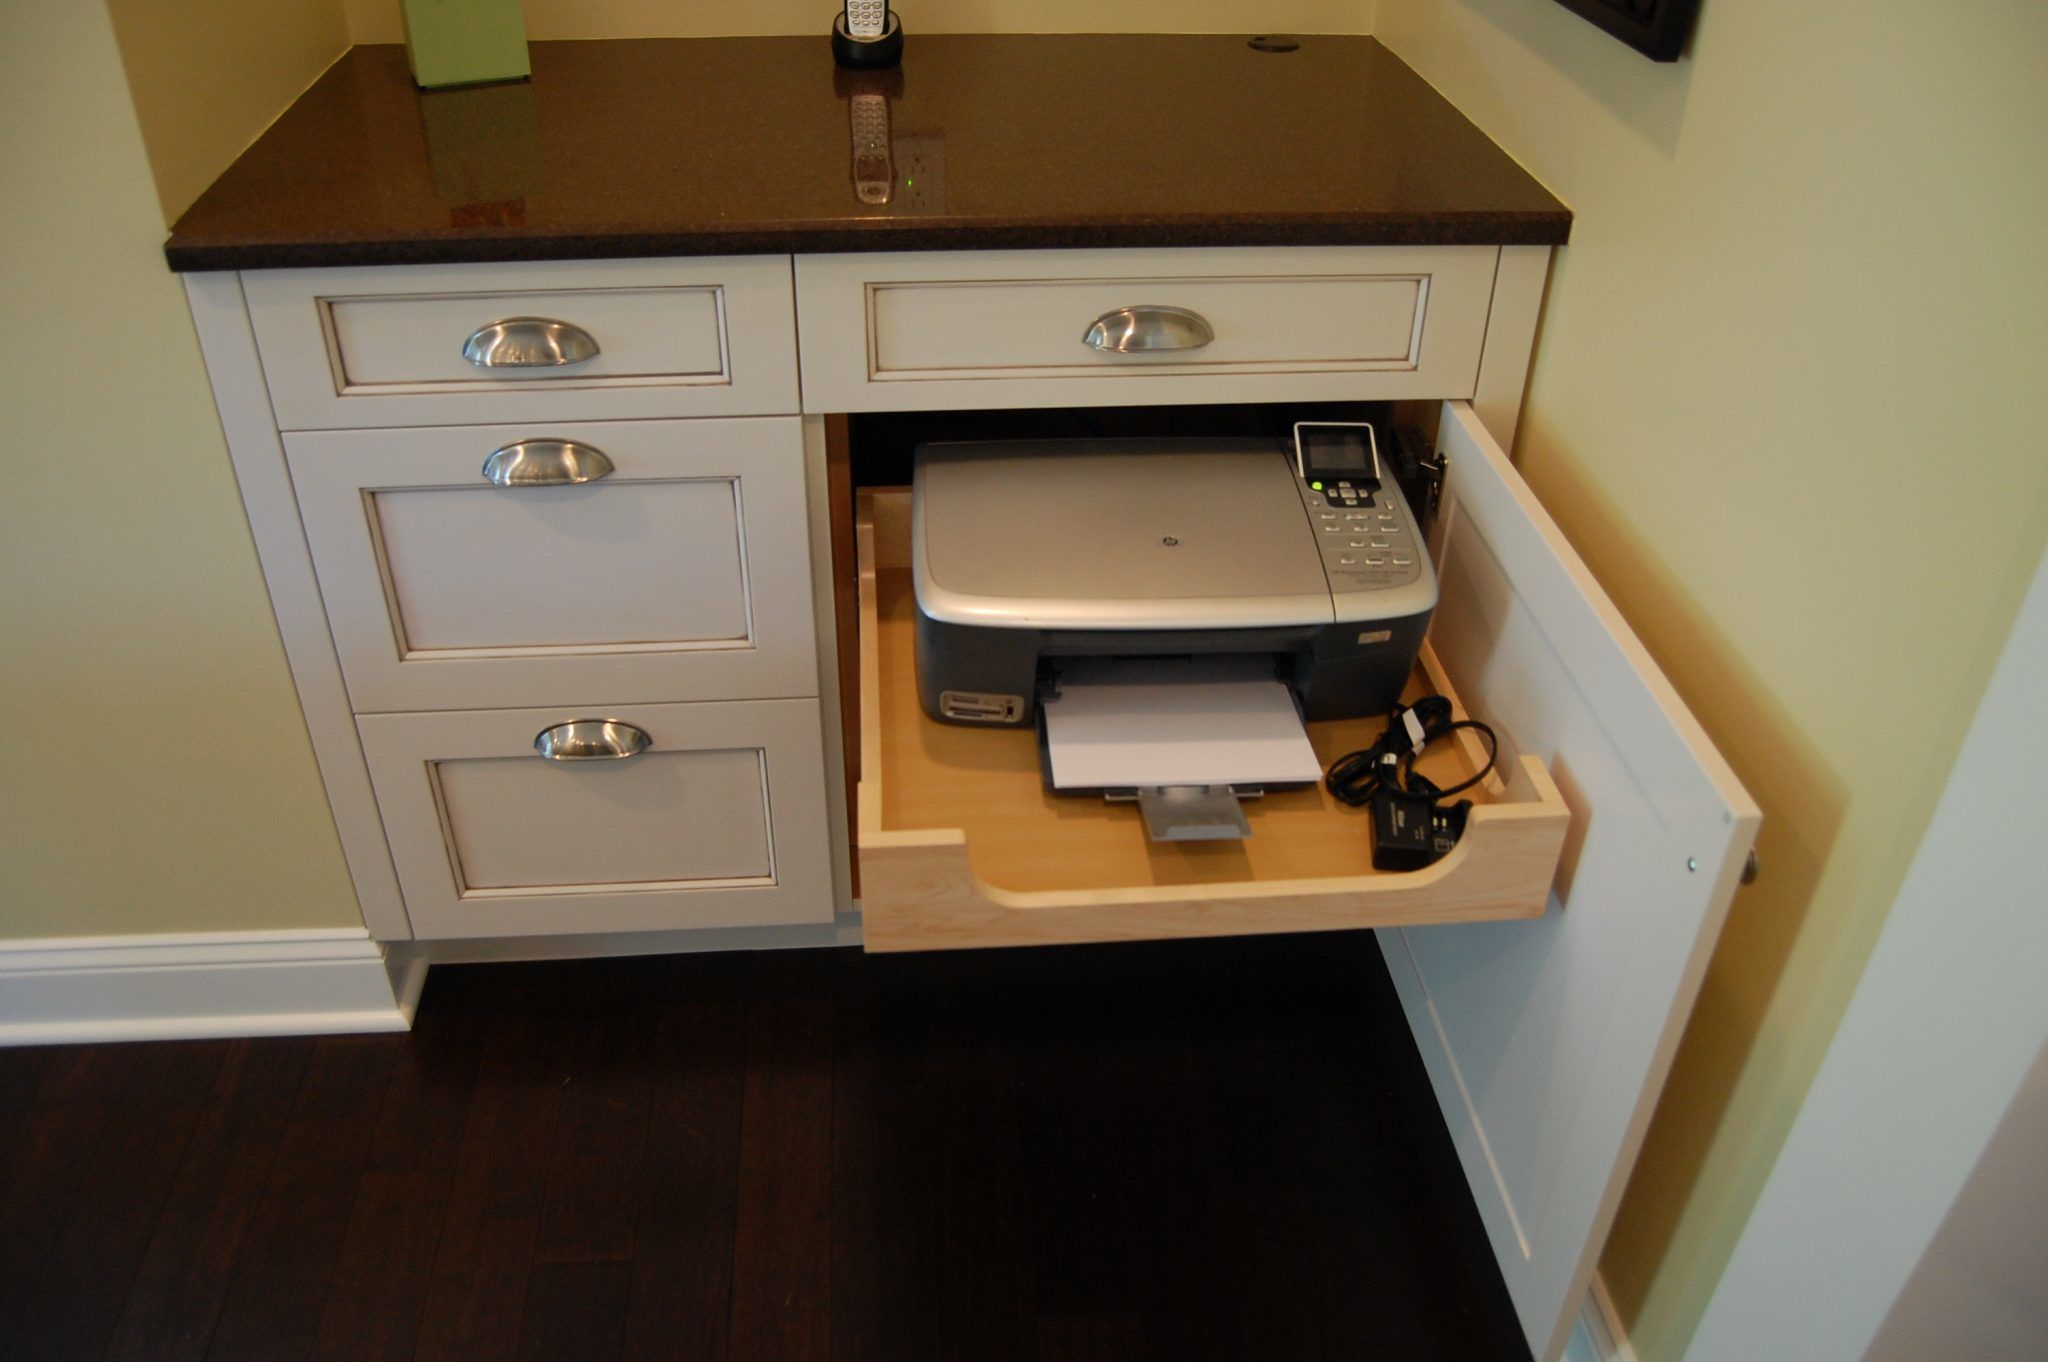 home-printer-concealed-in-a-drawer-roll-out-tray